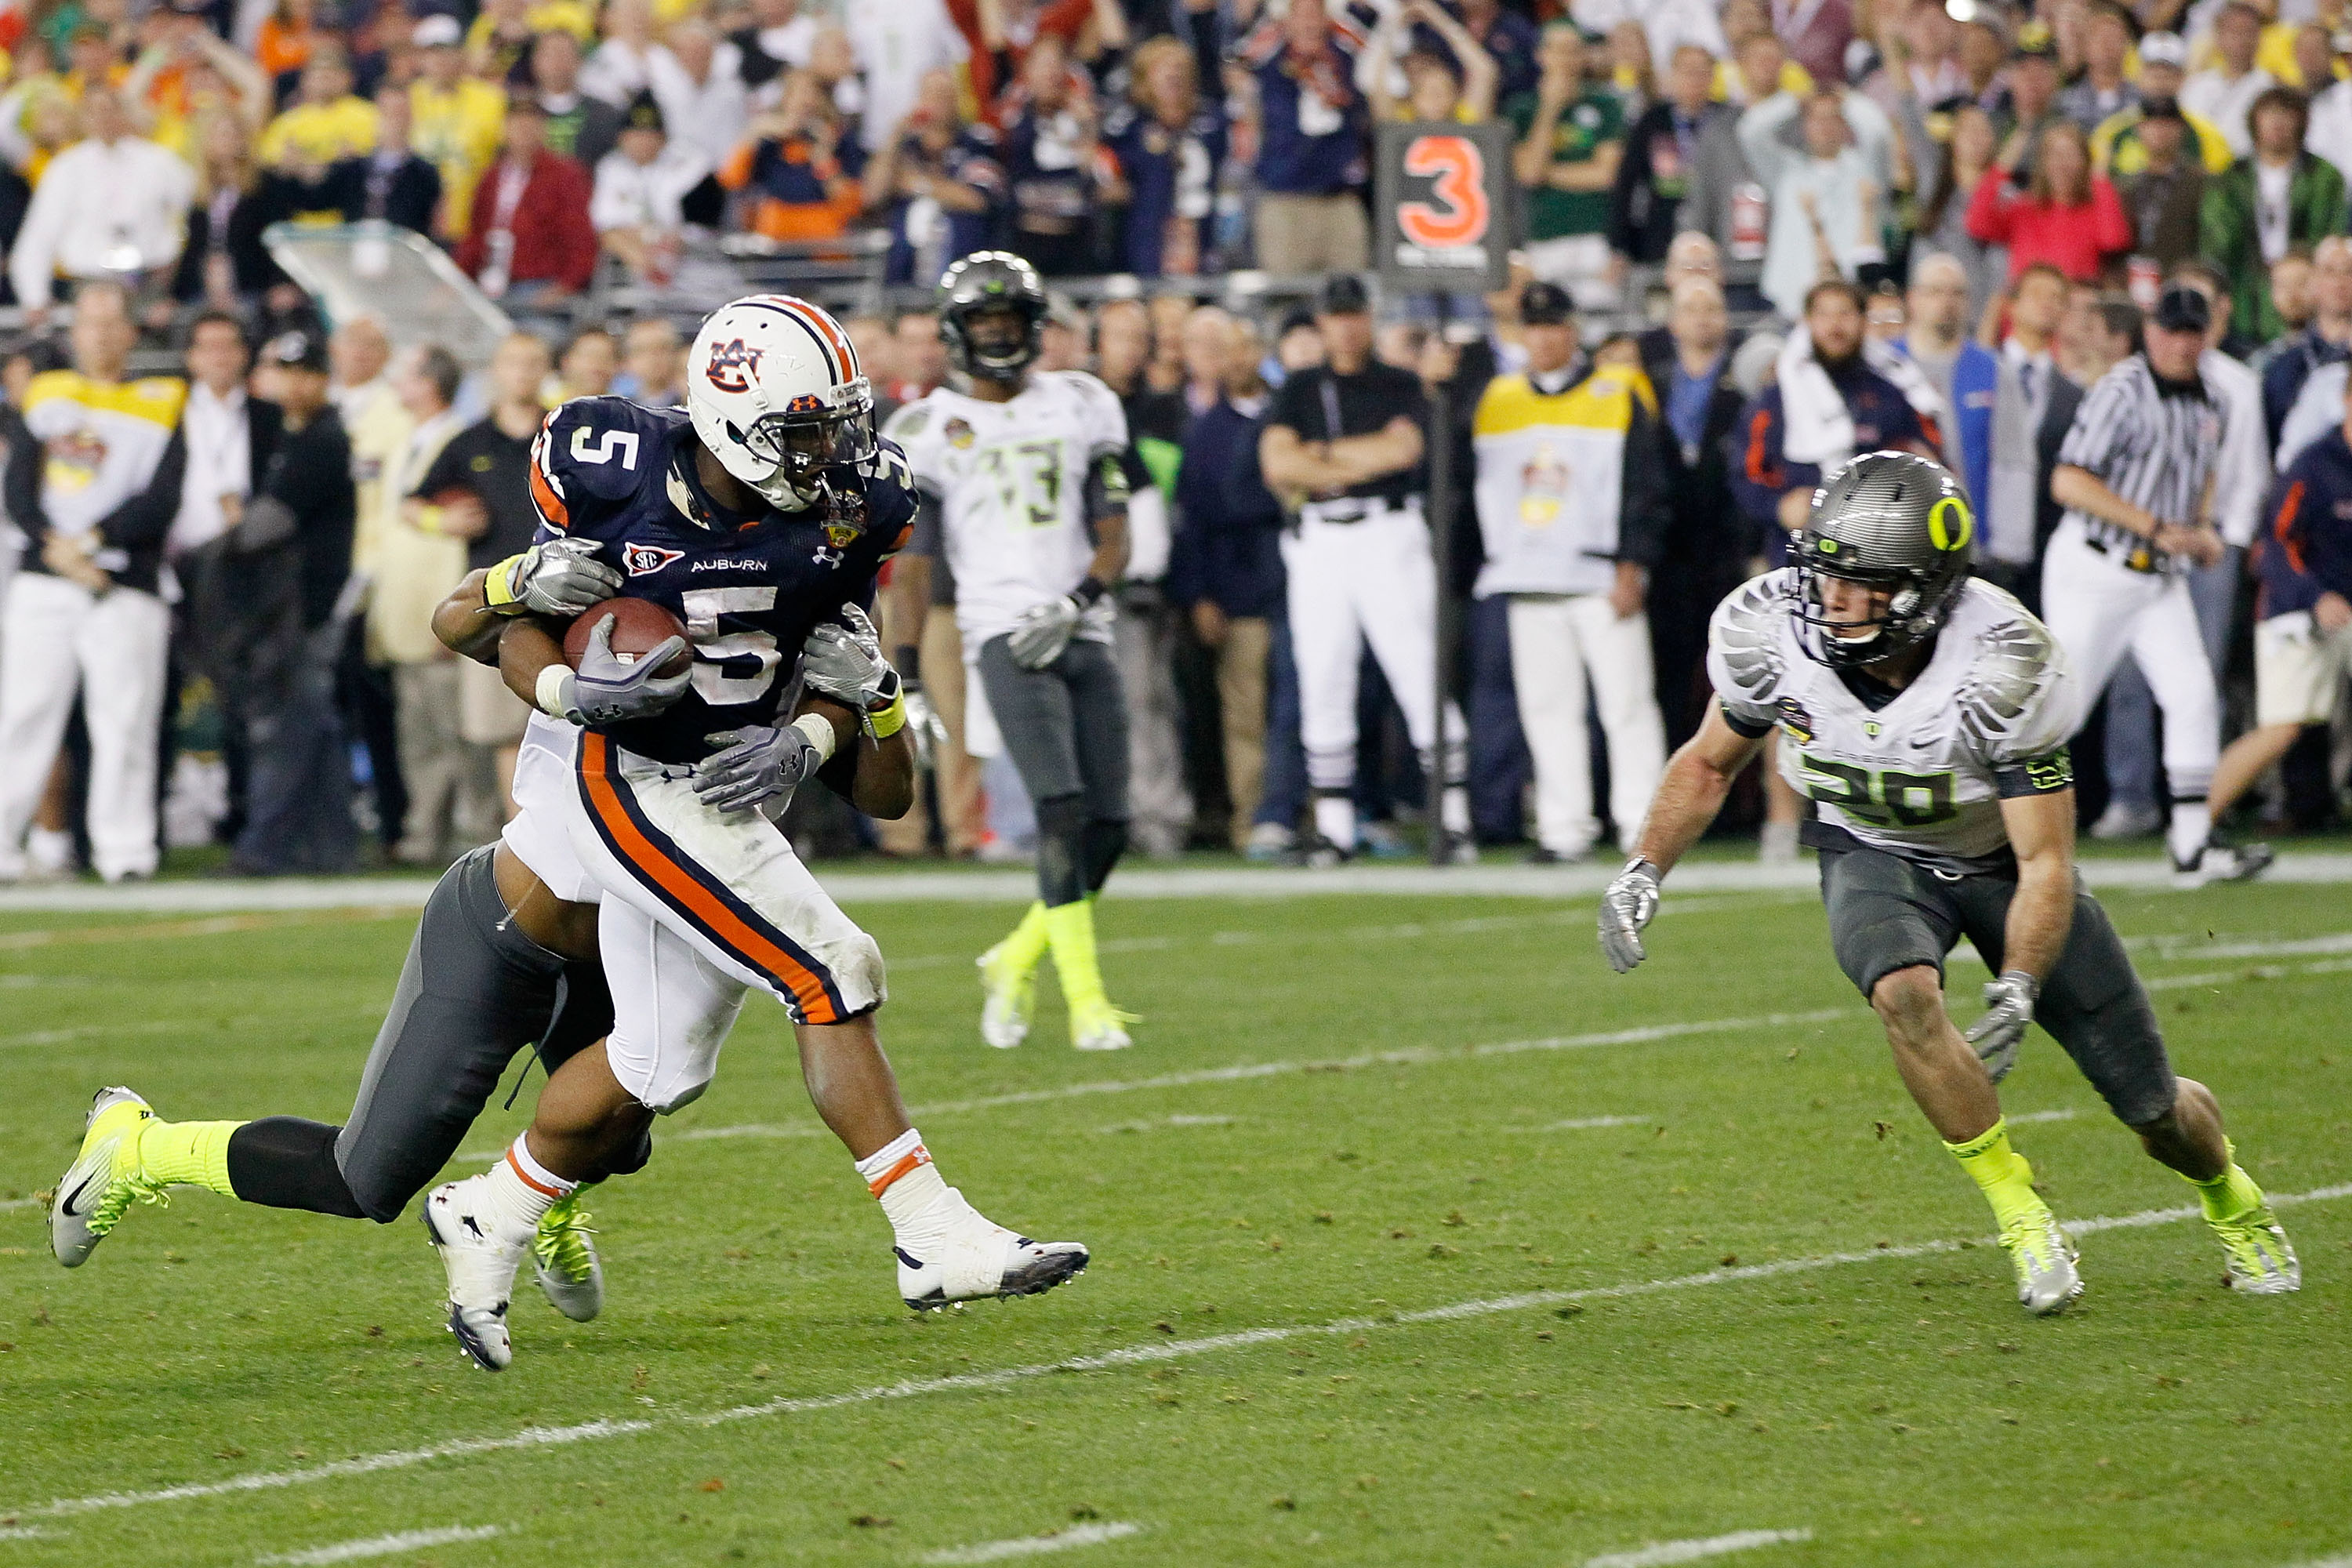 GLENDALE, AZ - JANUARY 10:  Michael Dyer #5 of the Auburn Tigers runs down field against the Oregon Ducks during the Tostitos BCS National Championship Game at University of Phoenix Stadium on January 10, 2011 in Glendale, Arizona.  (Photo by Kevin C. Cox